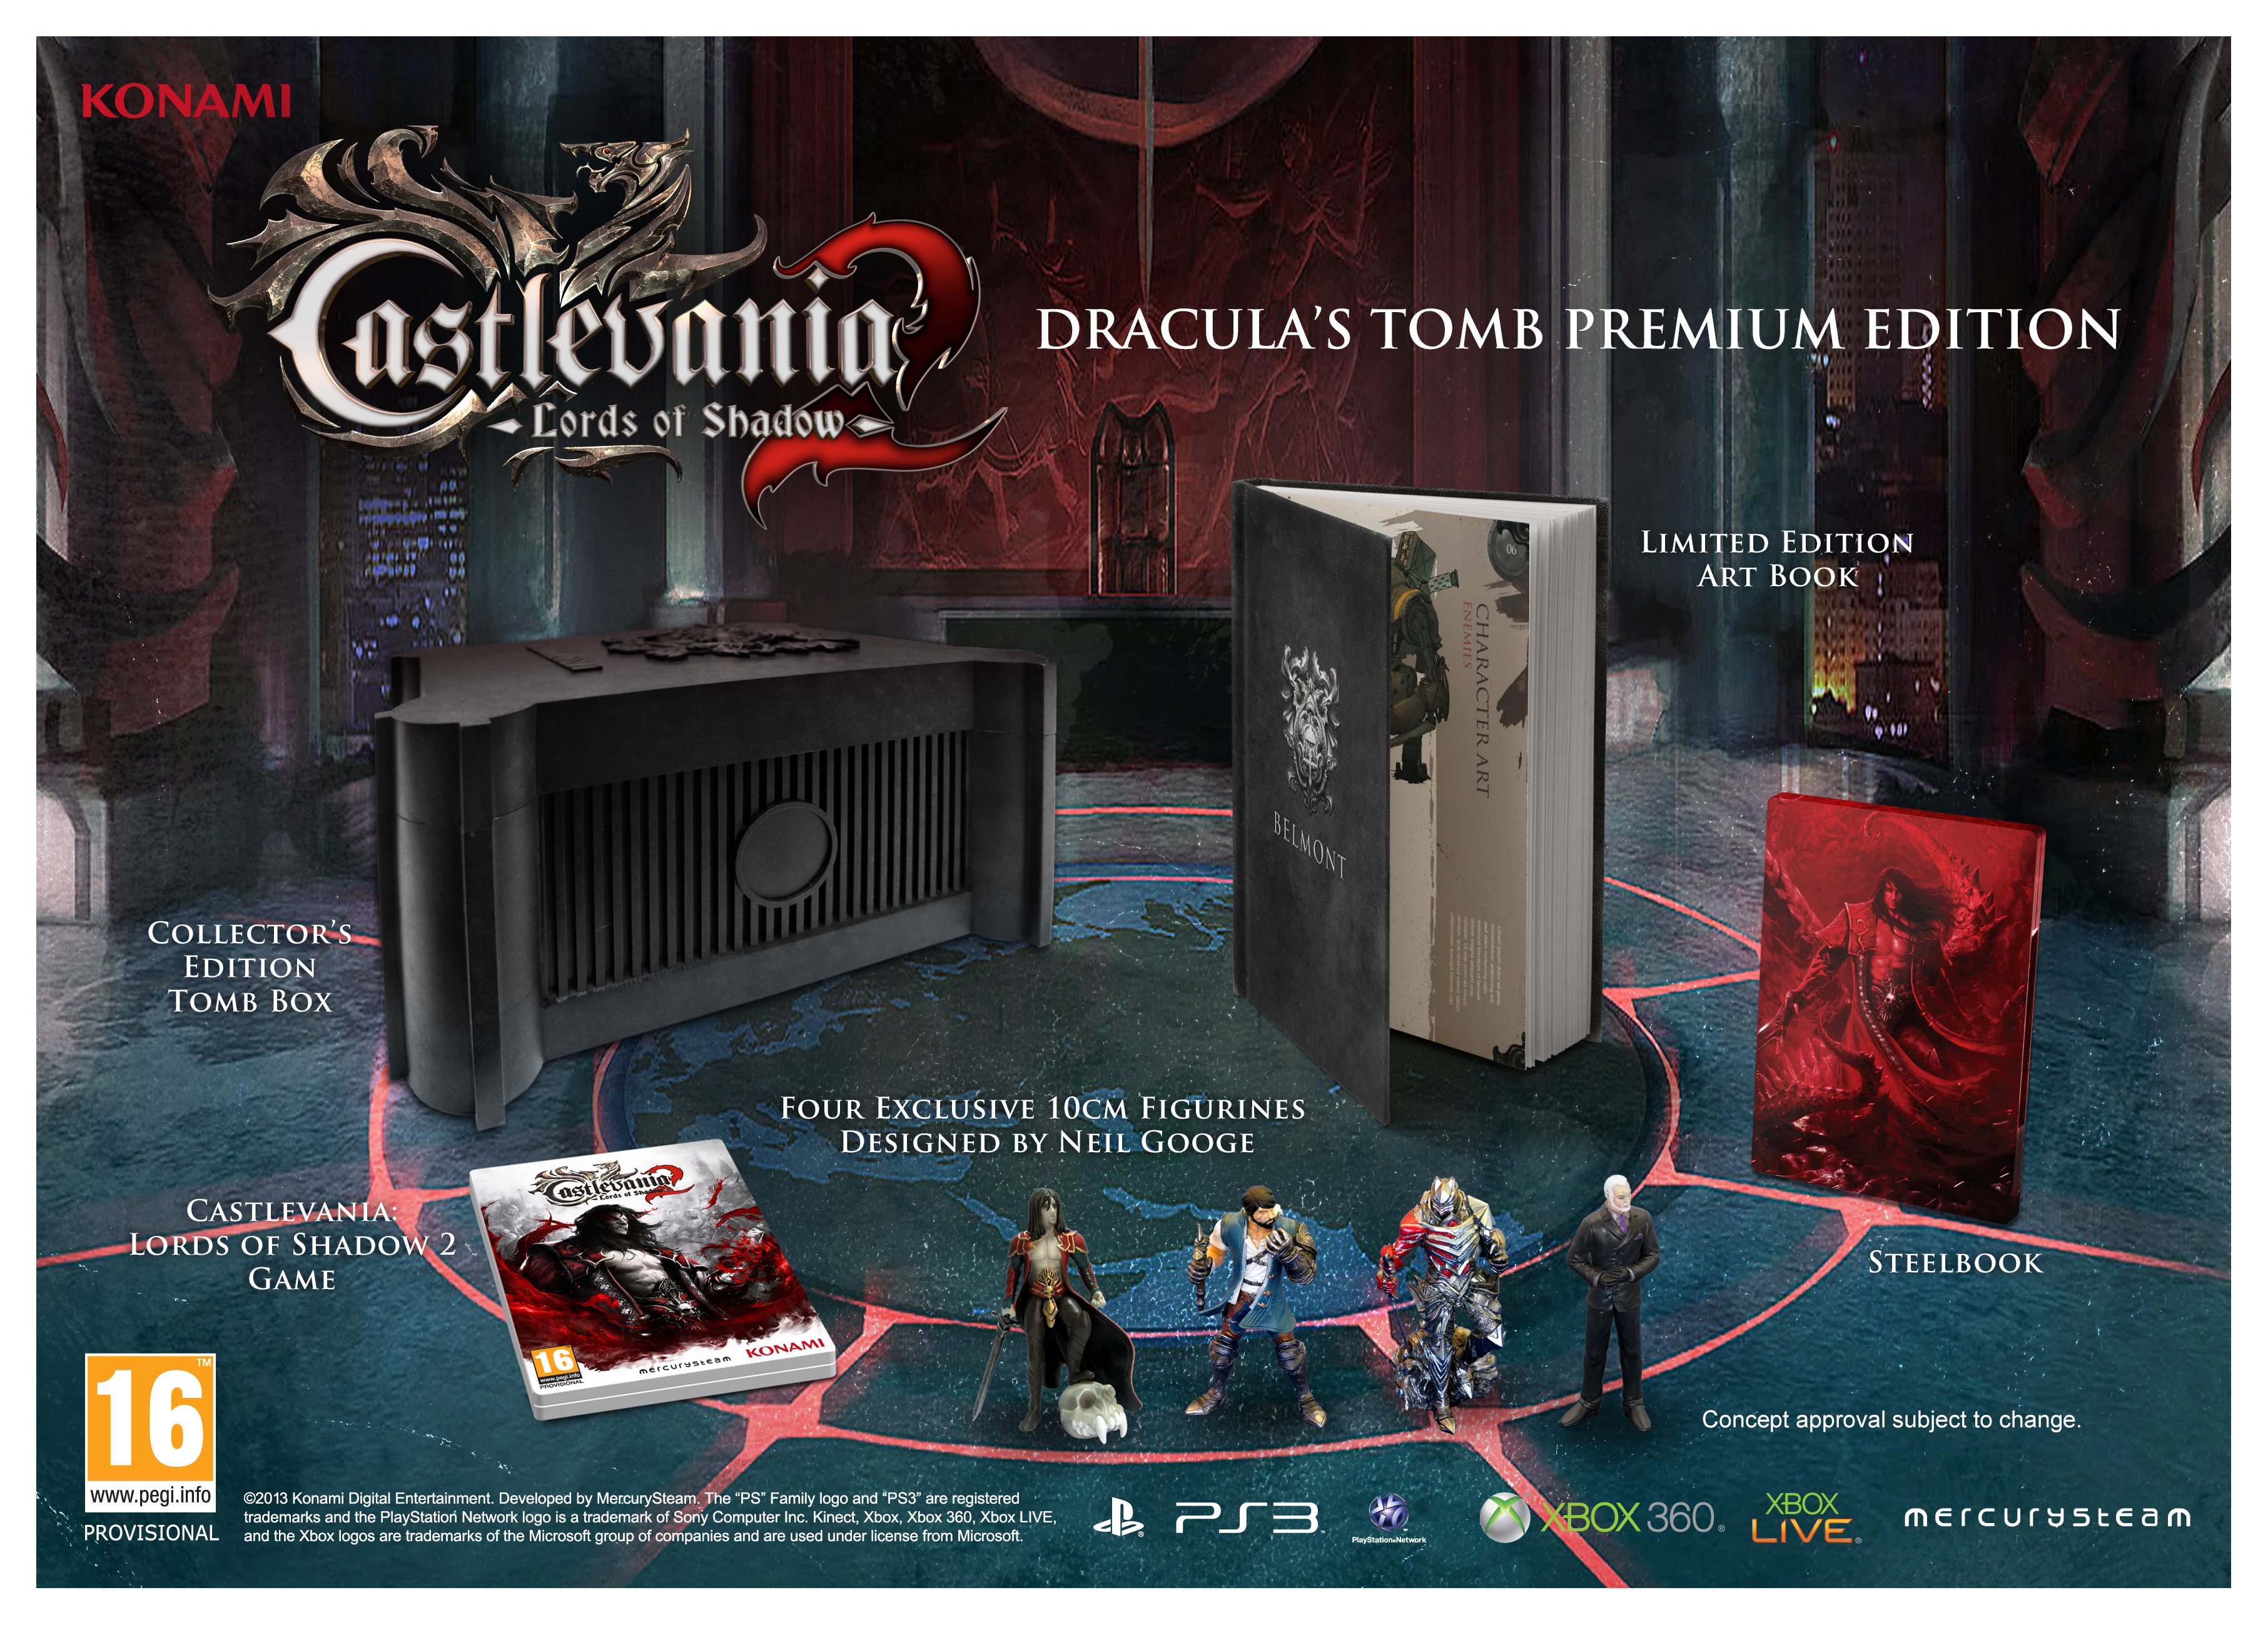 Castlevania Lords of Shadows 2 Dracula's Tomb Premium Edition